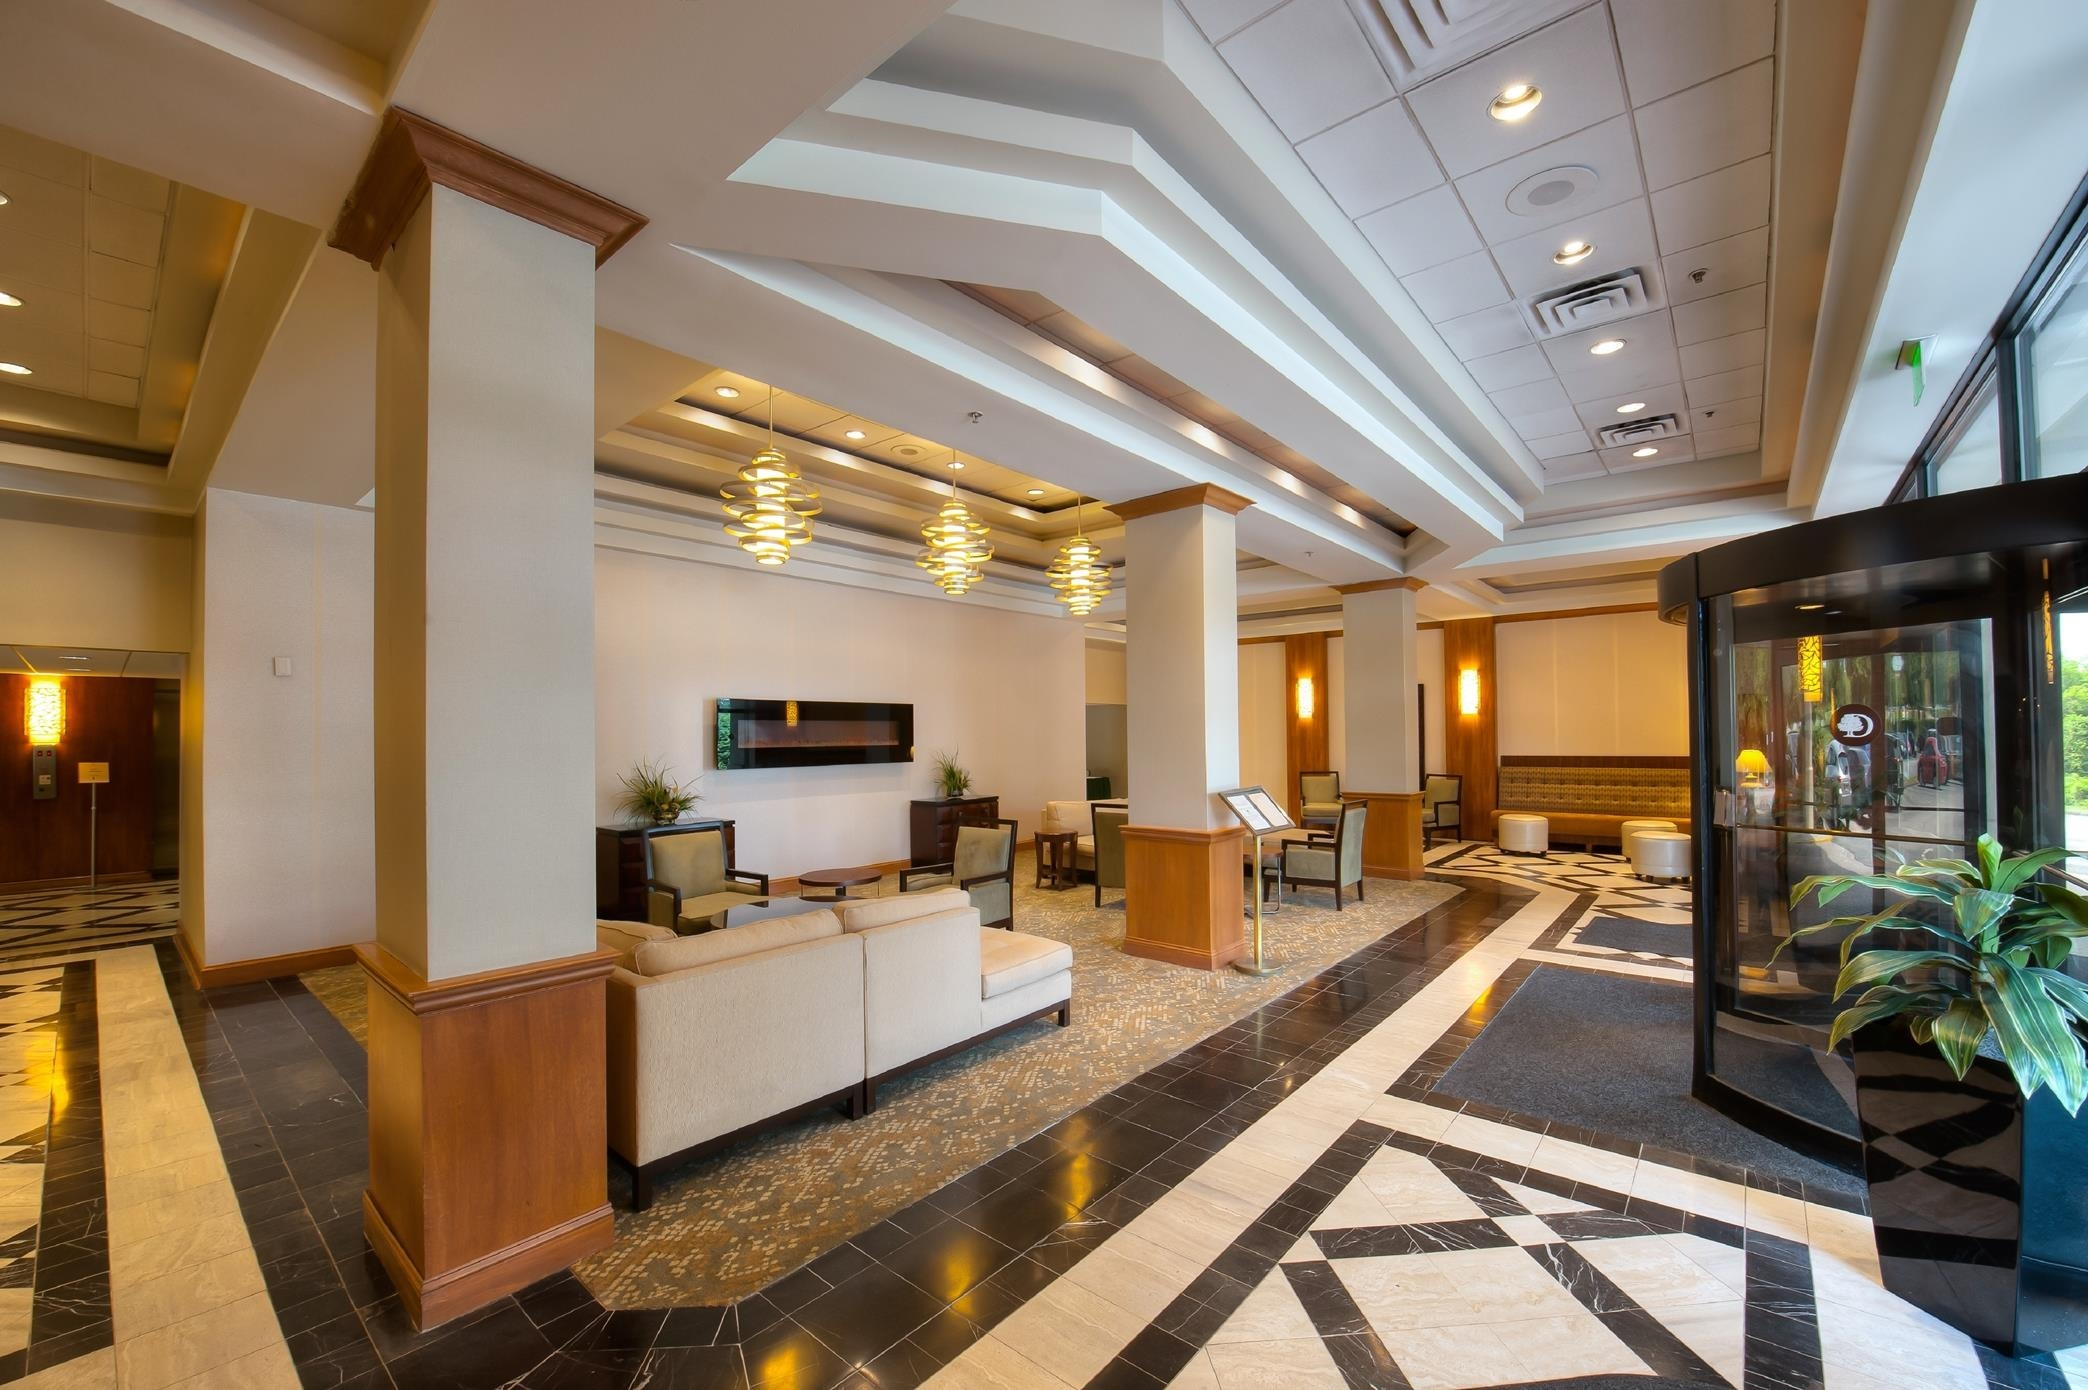 DoubleTree by Hilton Hotel Baltimore North - Pikesville image 13